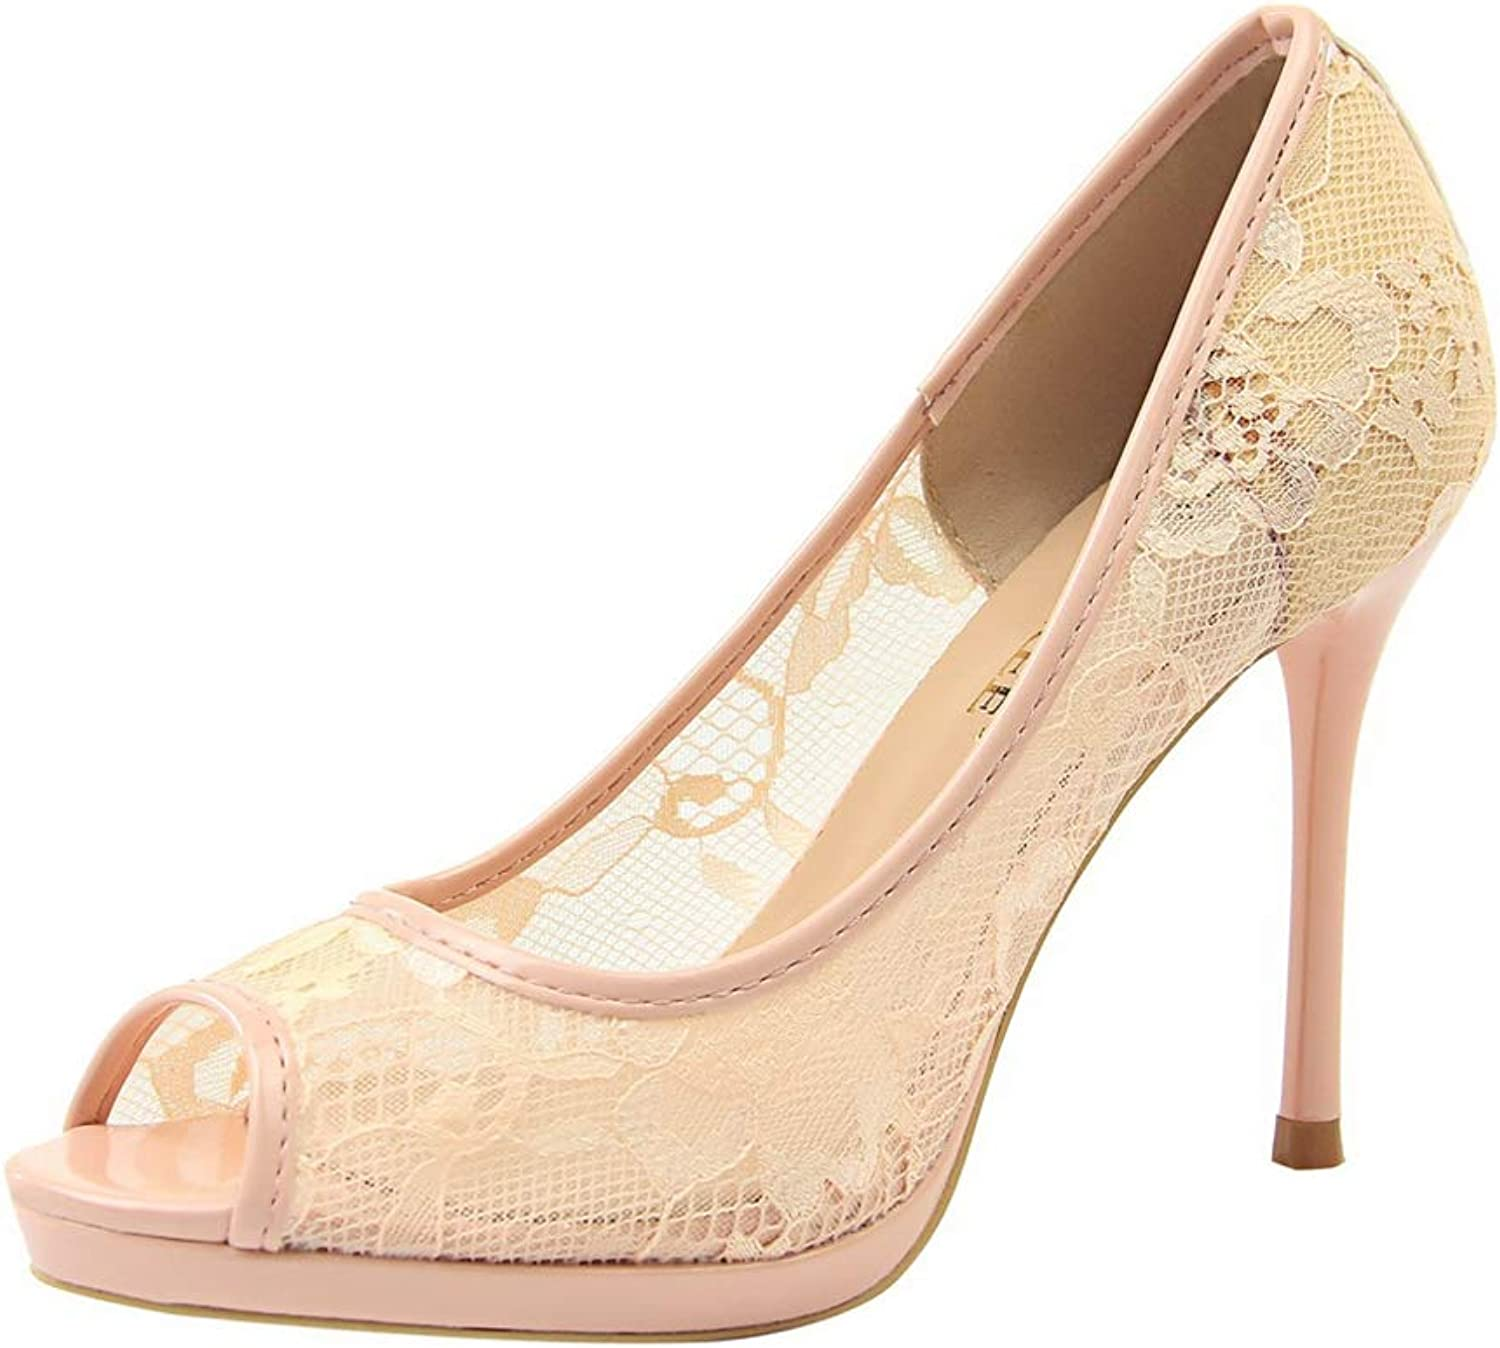 Sam Carle Women Pumps, Sexy Lace Hollow Out High Thin Heel Peep Toe Party Dating shoes